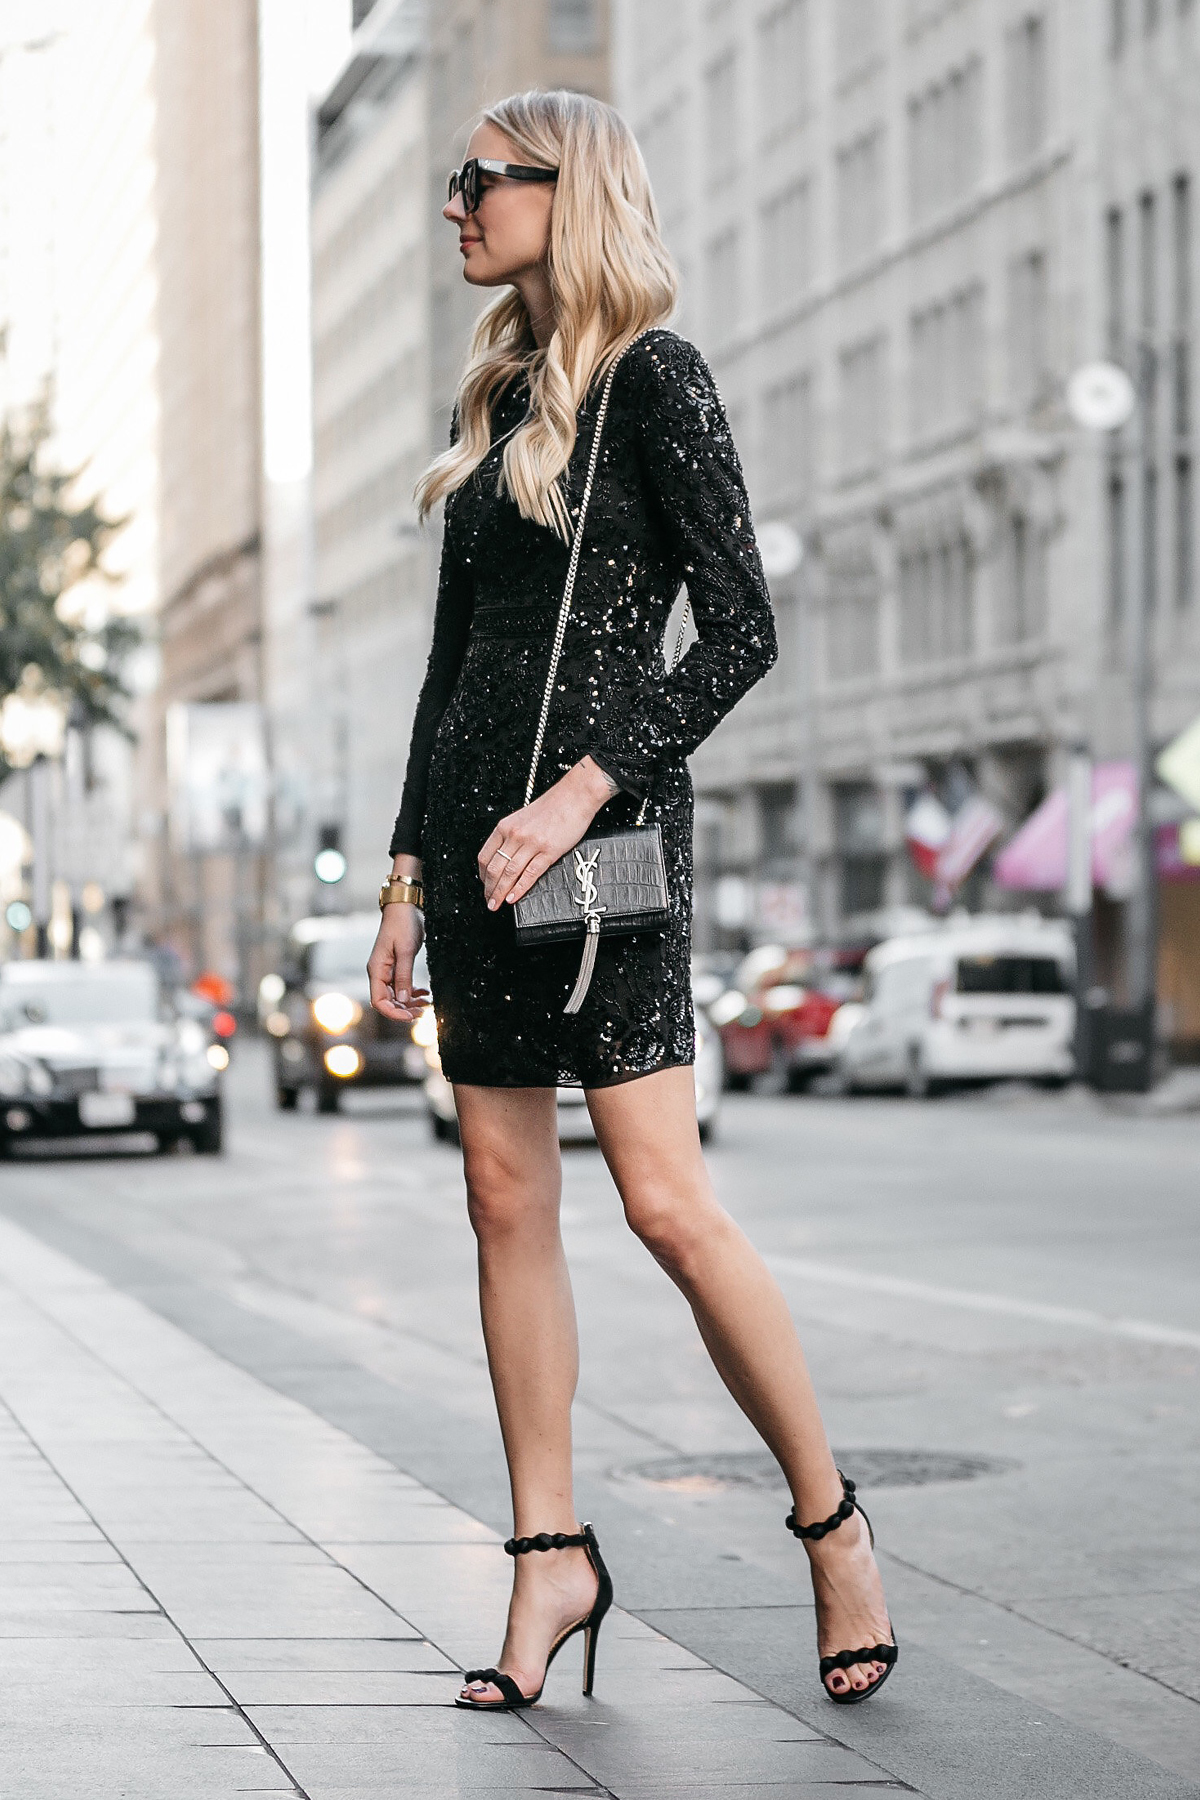 Blonde Woman Wearing Long Sleeve Black Sequin Dress Needle and Thread Black Ankle Strap Heels YSL Black Crocodile Crossbody Fashion Jackson Dallas Blogger Fashion Blogger Street Style NYE Outfit